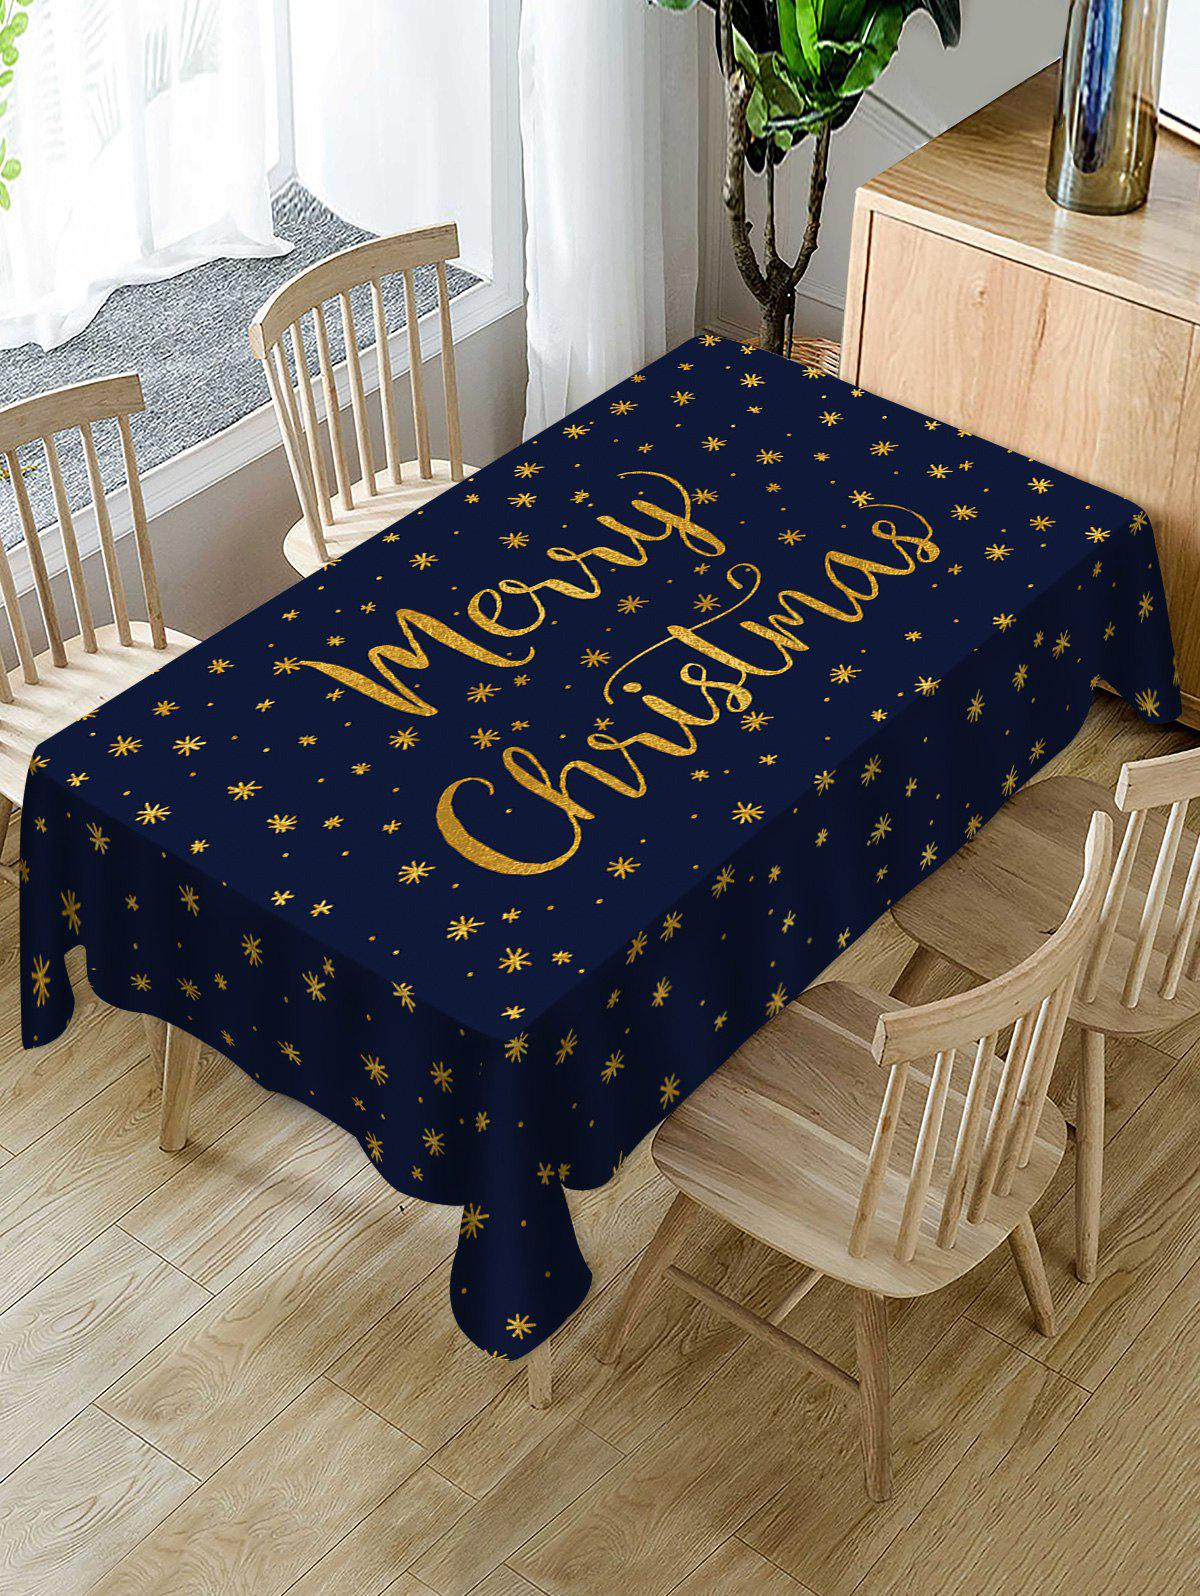 Merry Christmas Snowflake Fabric Waterproof Table Cloth - CADETBLUE W54 X L72 INCH